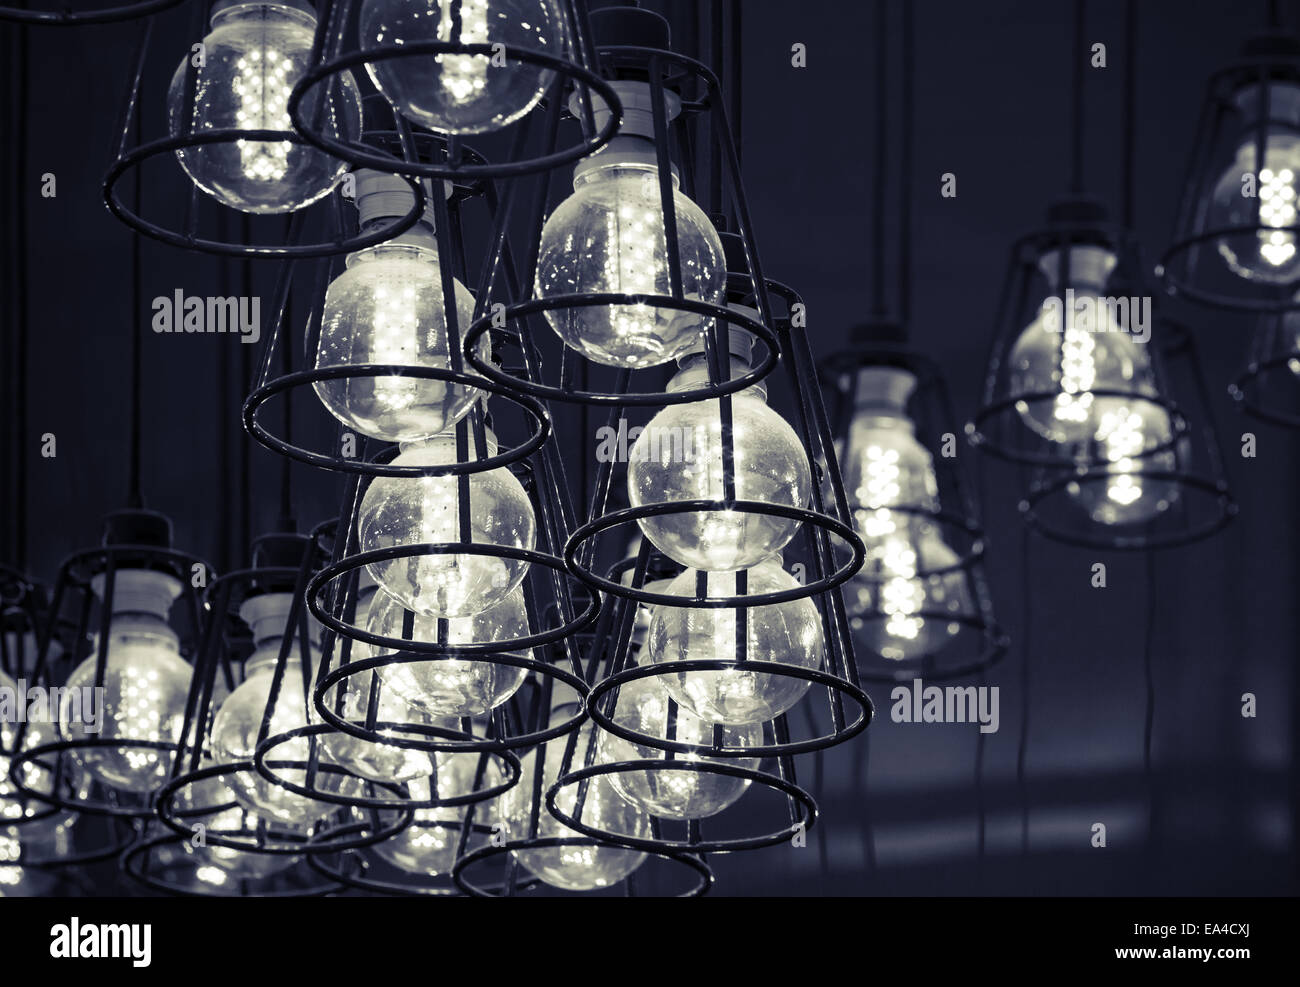 Abstract interior fragment. Stylized vintage illumination with modern LED lamps in metal lampshades, black and white - Stock Image